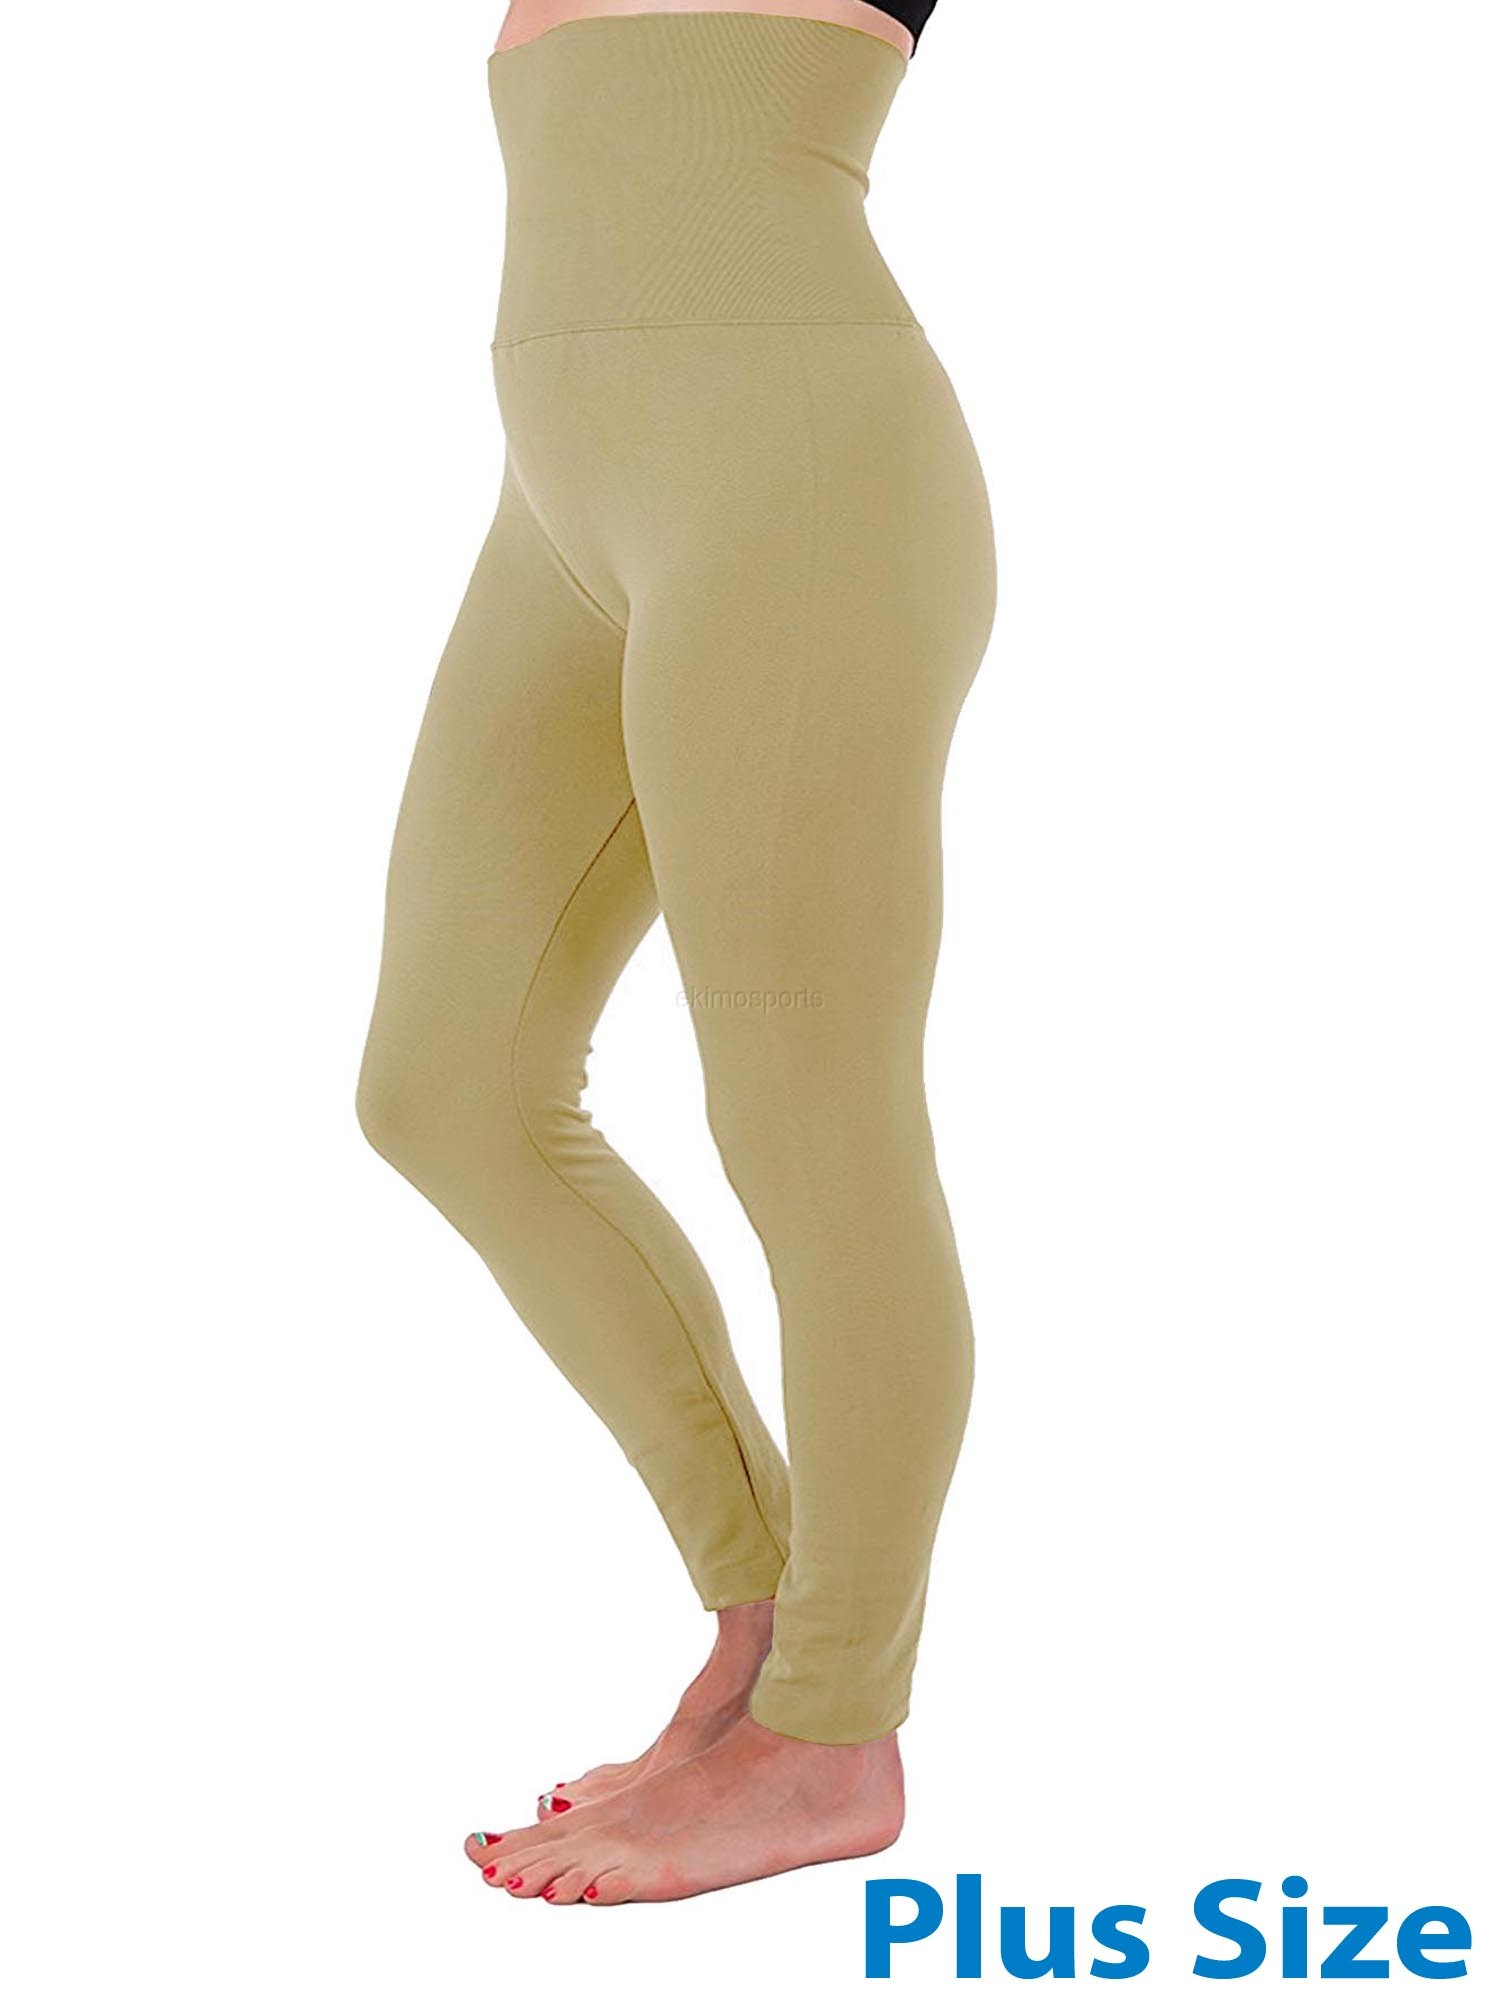 High Waist Tummy Control Full Length Legging Compression Top Pants Fleece Lined Plus Size XL 2XL